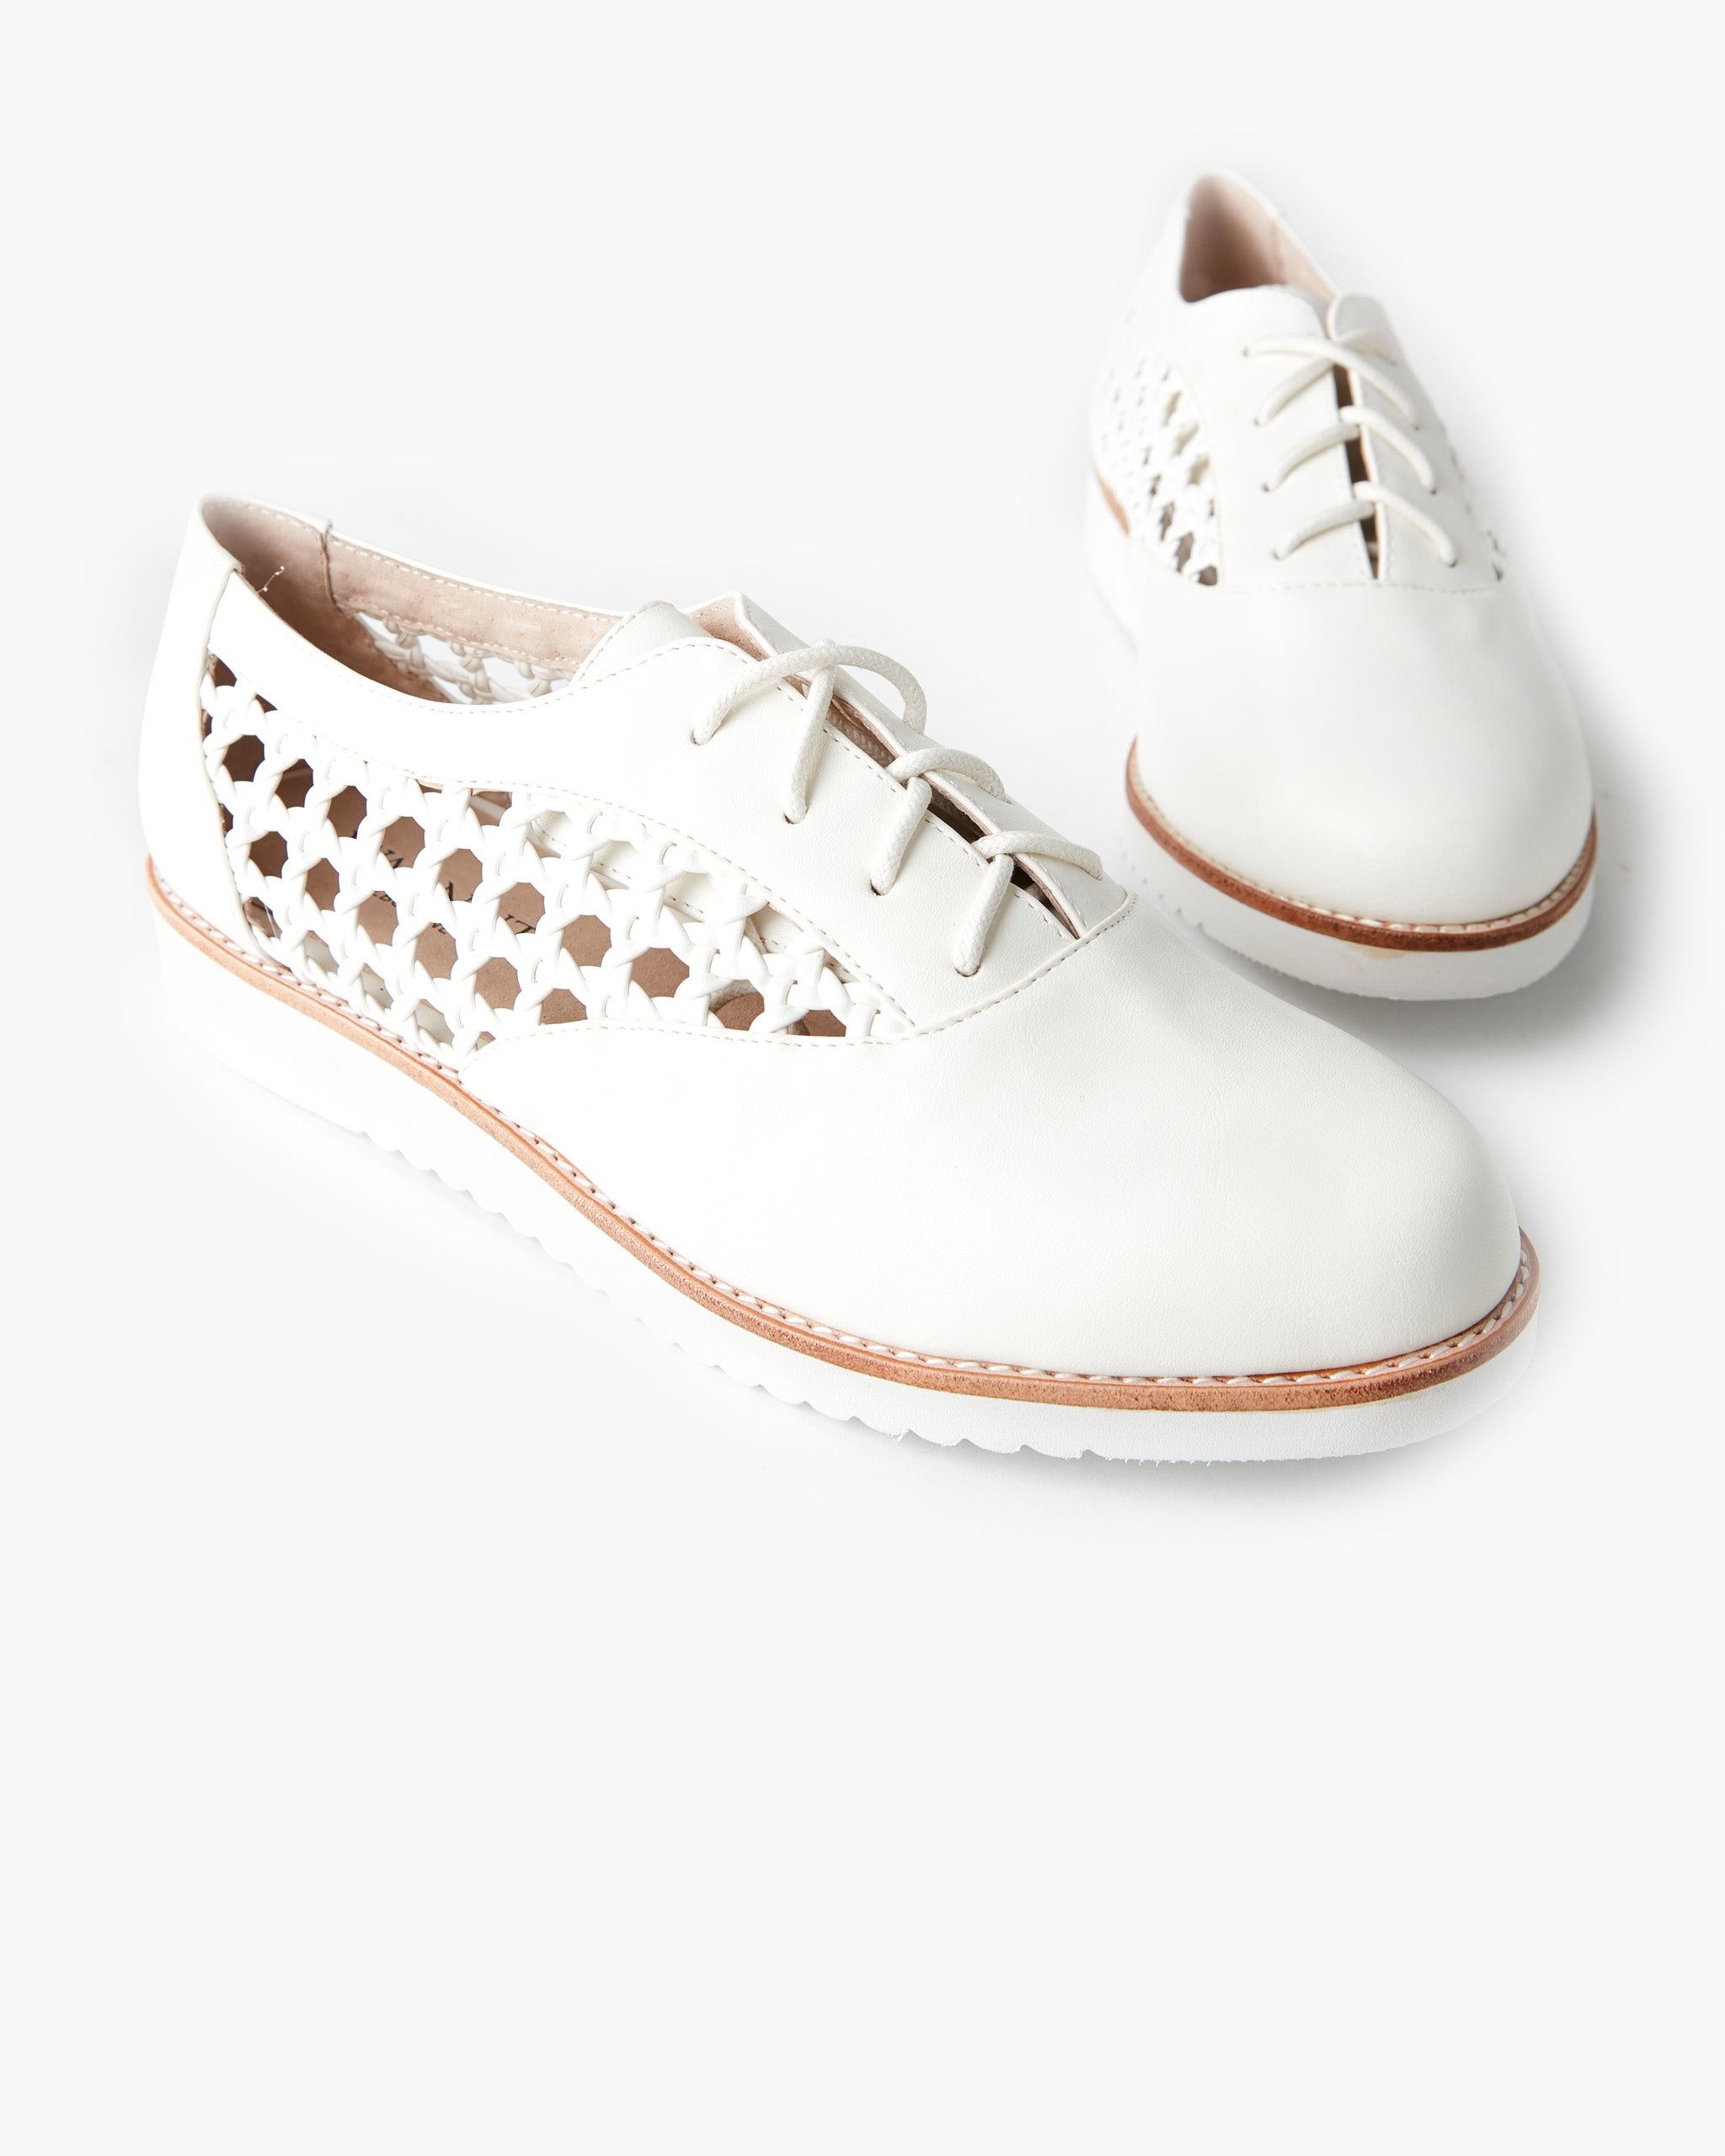 Meka Lace Up - Marshmallow